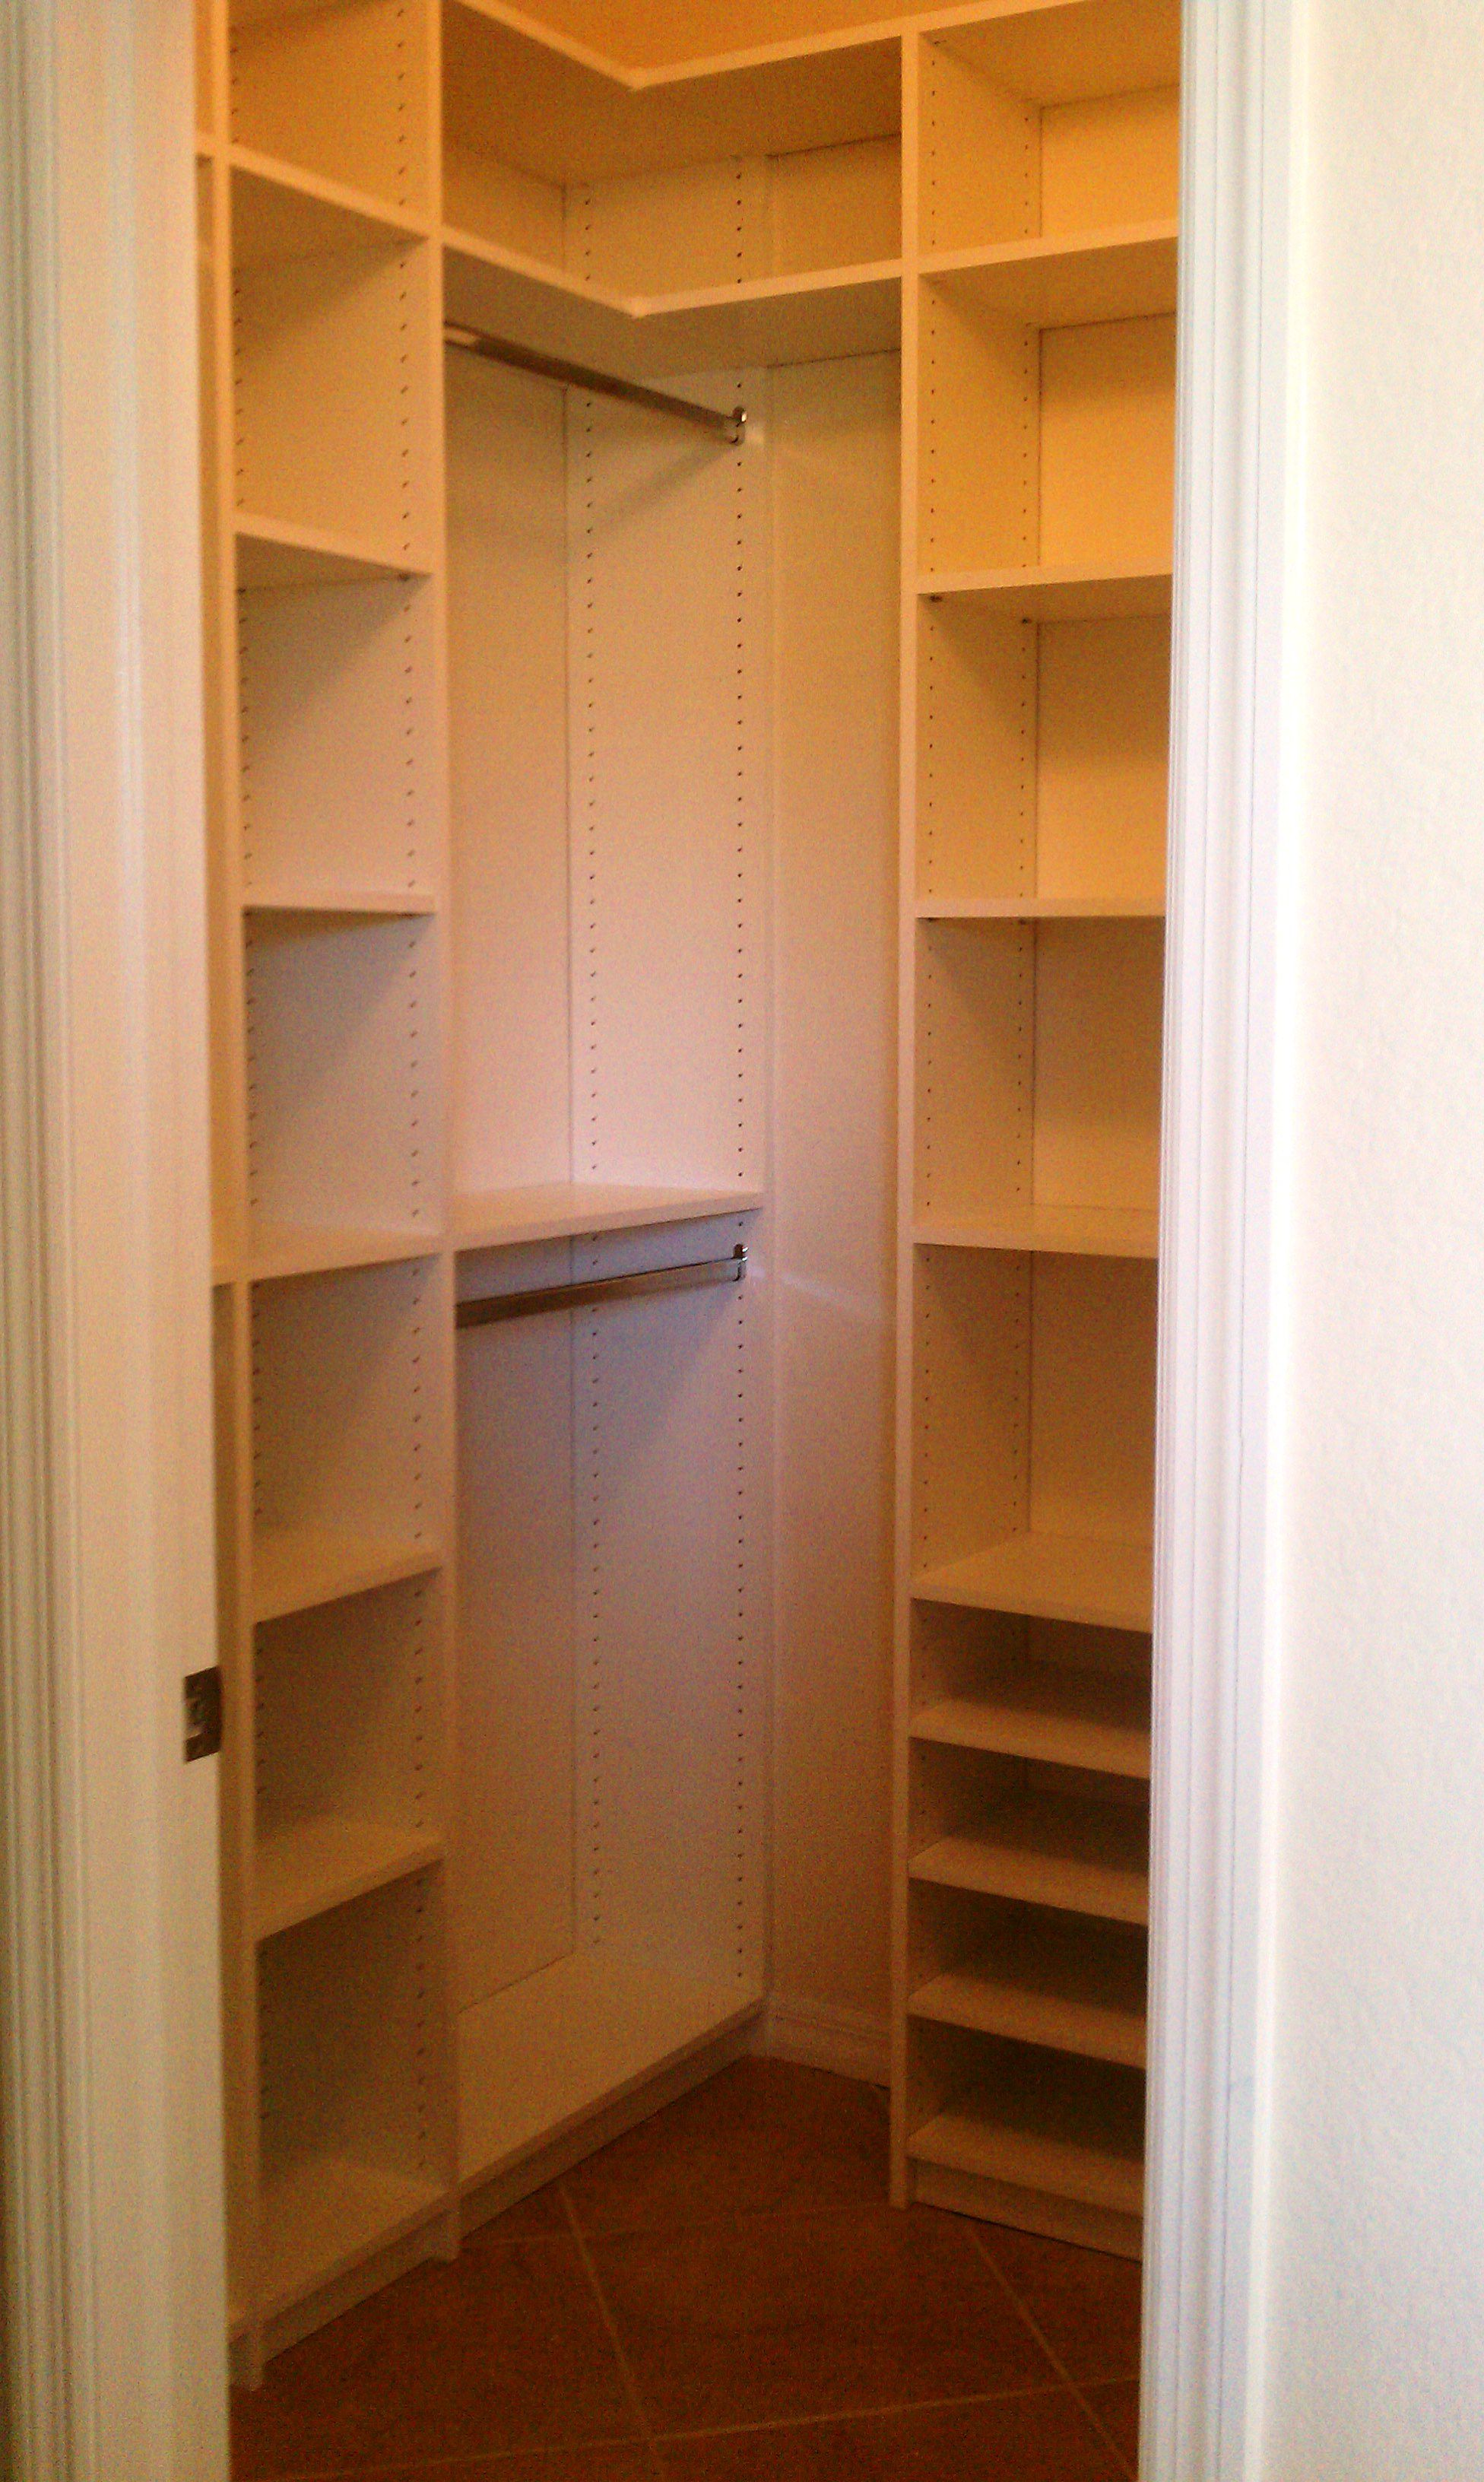 Wood Wardrobe Closet Plans ~ Stunning small closet organization ideas midcityeast